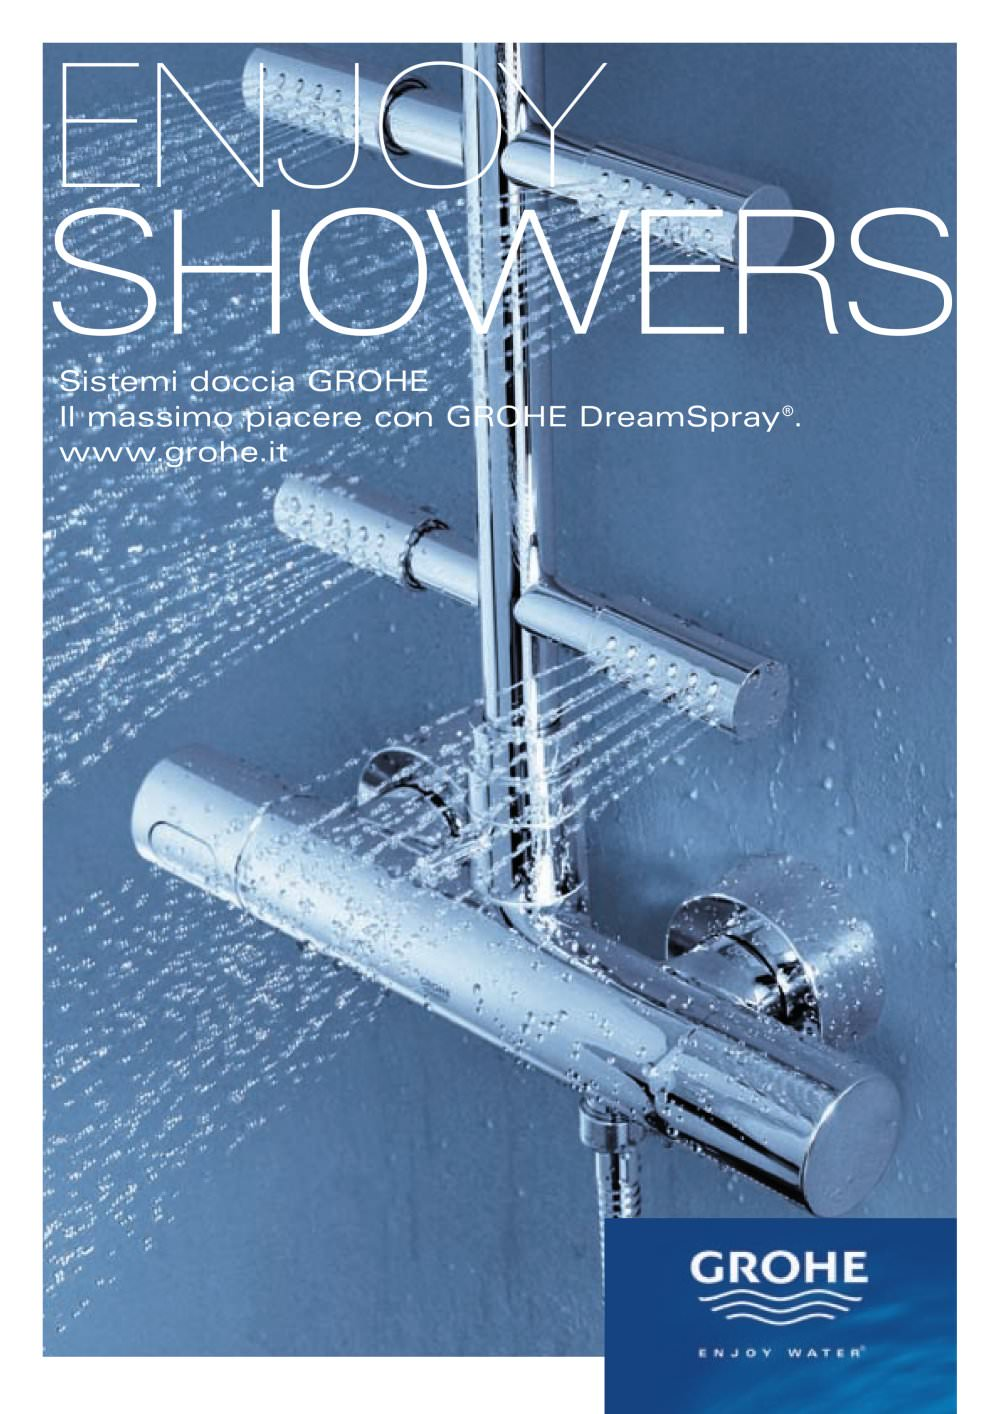 Catalogo Rubinetteria Grohe Pdf.Enjoy Showers Grohe Catalogo Pdf Documentazione Brochure